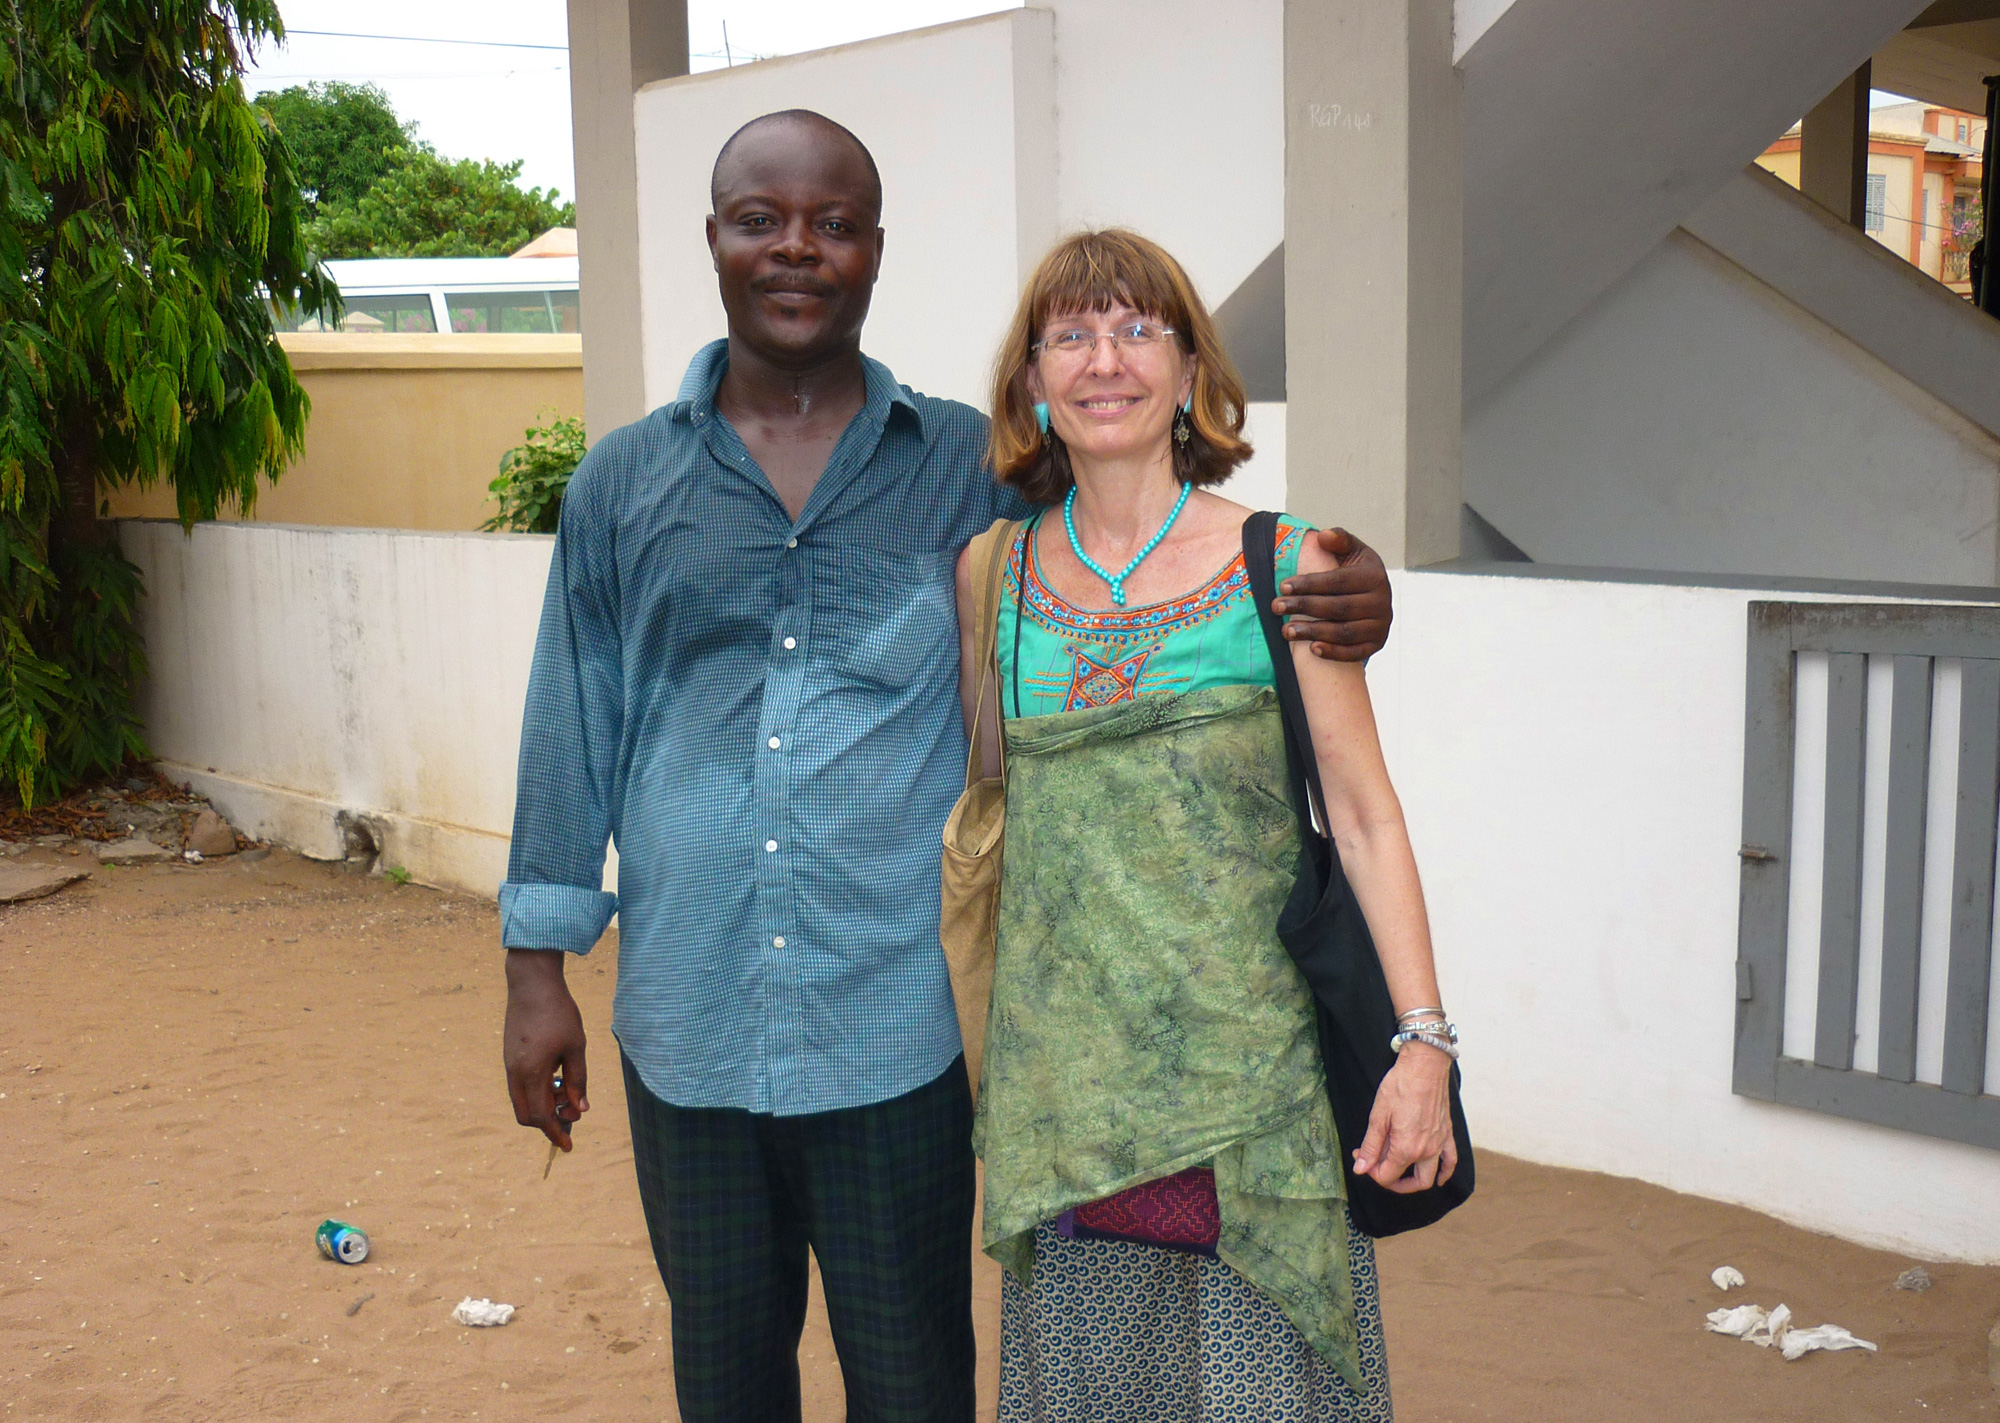 Lisa Earl Castillo with Richard Rufino, during a symposium on Agudá culture and heritage in Agoué in 2014. Richard Rufino, a Shango priest, is the great-great grandson of Nupe freedman Rufino Moreira Serra, who left Bahia in the 1840s. He first went to Lagos but eventually resettled in Agoué, across the street from Yacouba Antonio Pereira dos Santos, a Muslim Nagô who he had known in Bahia. See the freedom letter of Rufino's ancestor below. ©Lisa Earl Castillo